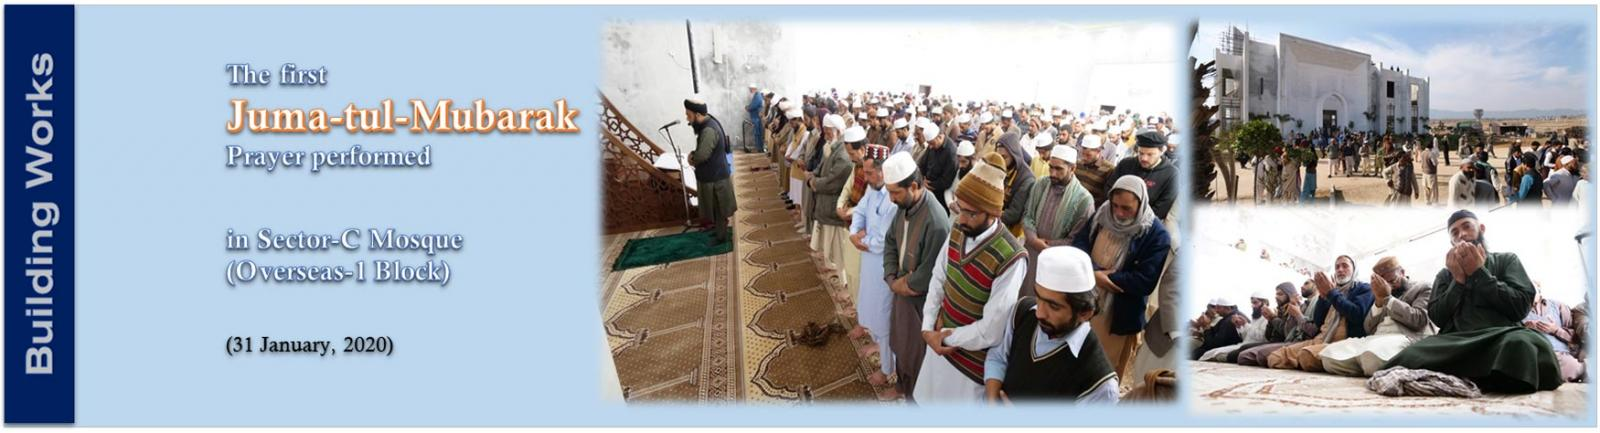 "First ""Juma-tul-Mubarak"" Prayer performed in Capital Smart City"